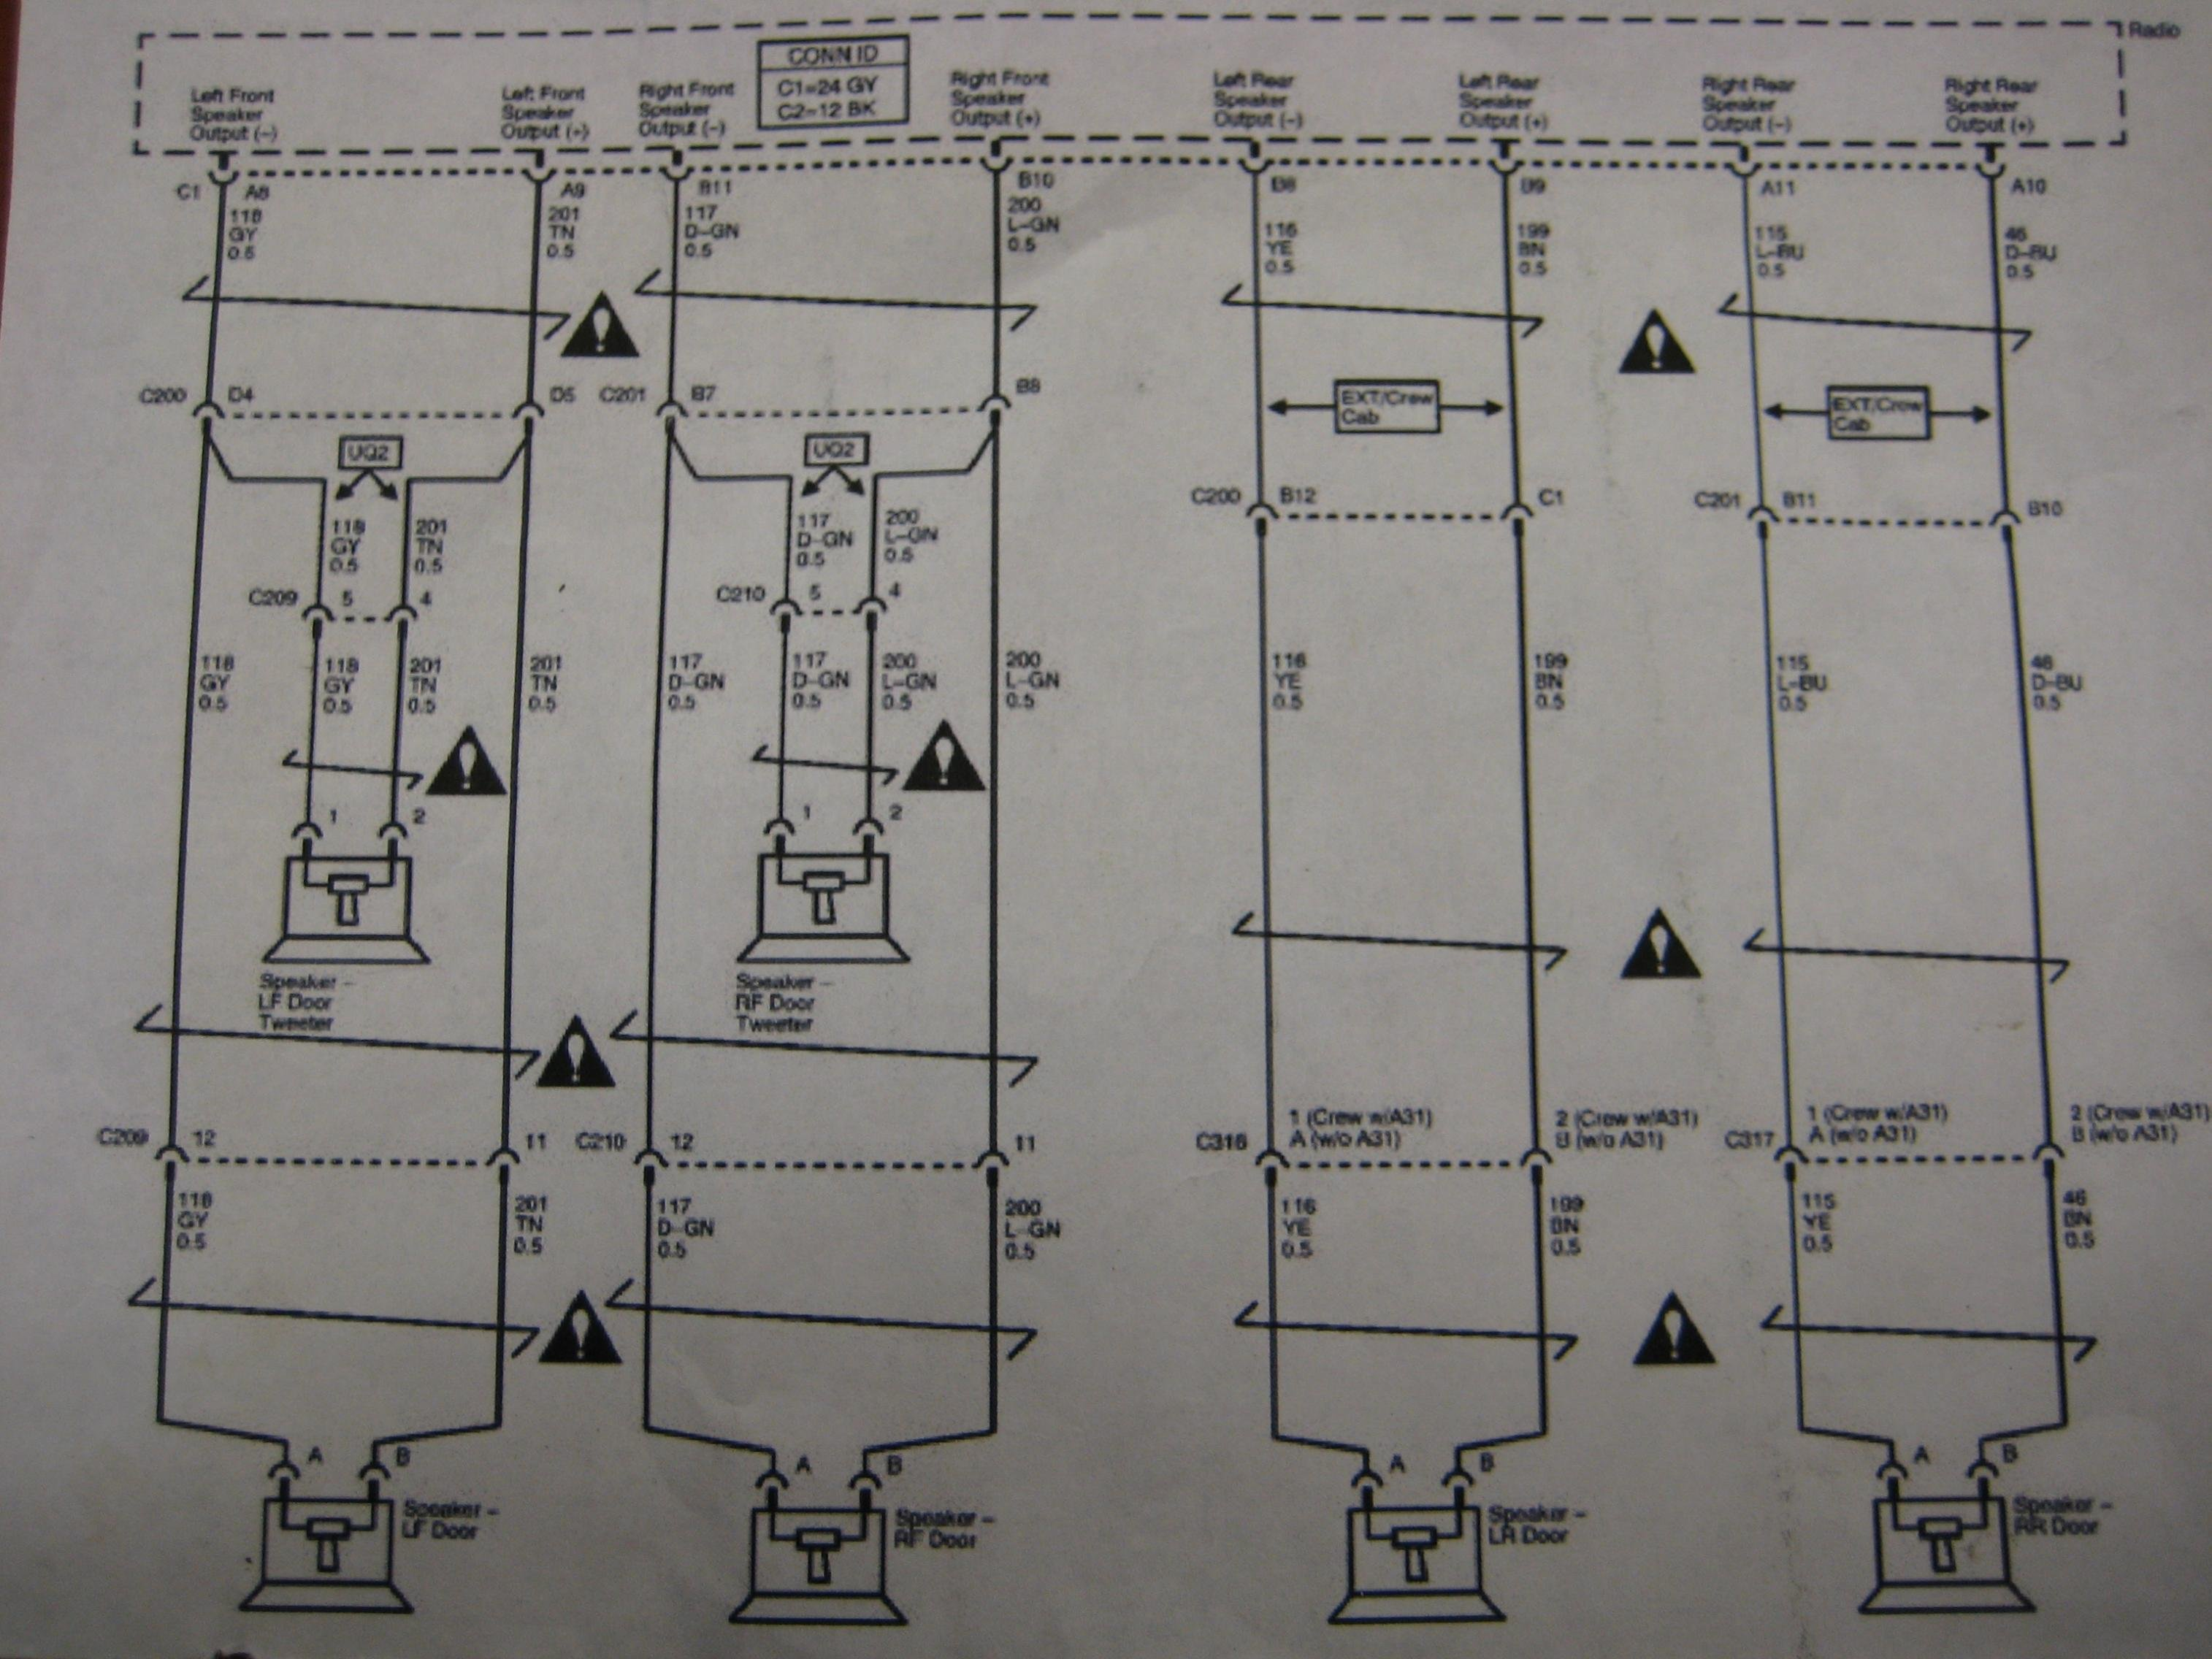 2008 Gmc Canyon Wiring Trusted Diagram 2005 Engine In A Temporary Sub And Need Help Chevrolet Colorado Interior